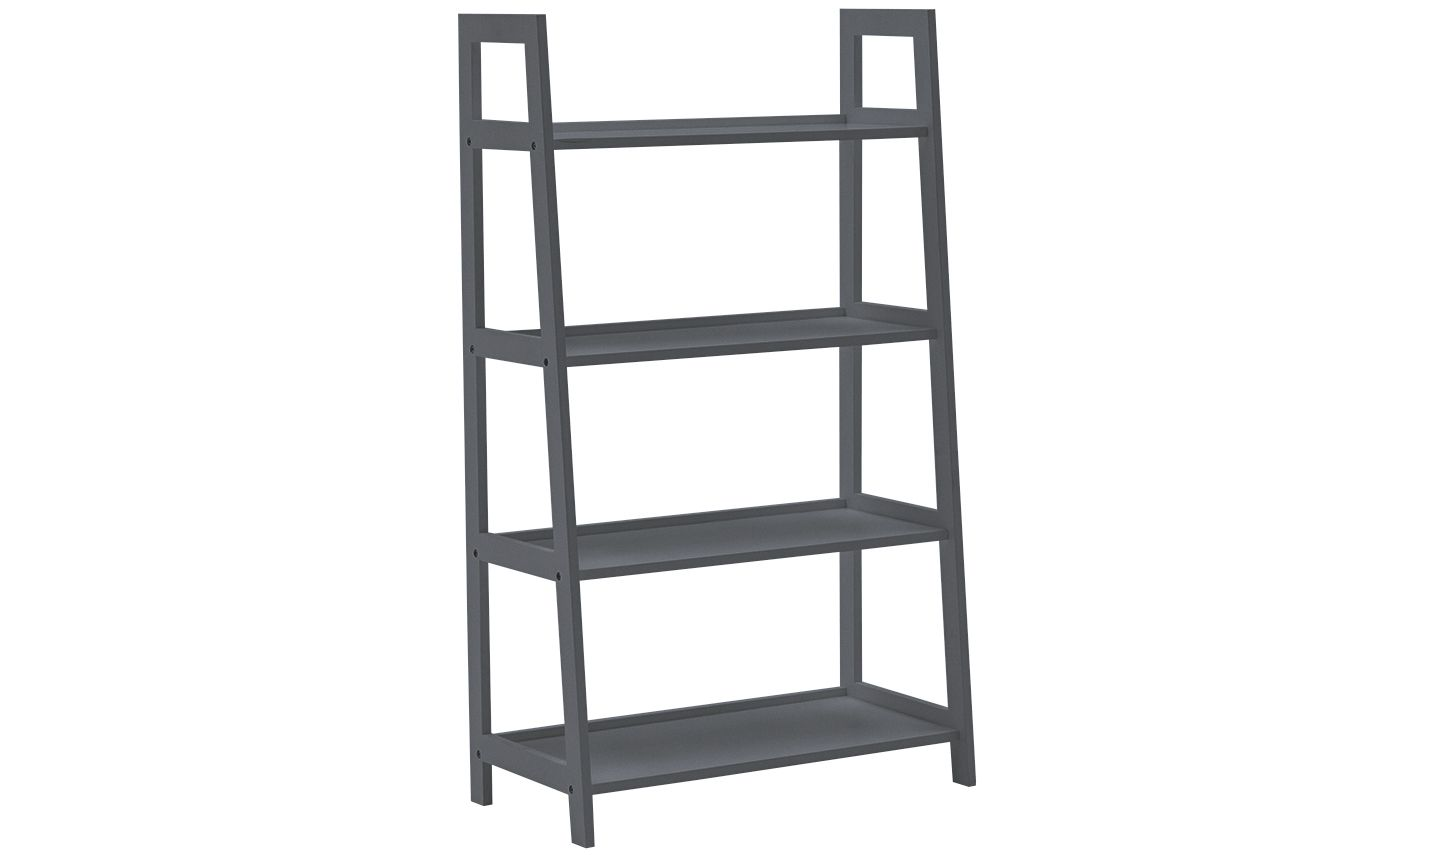 r buy bookcases wide web product tall maine shelf and home bookcase grey